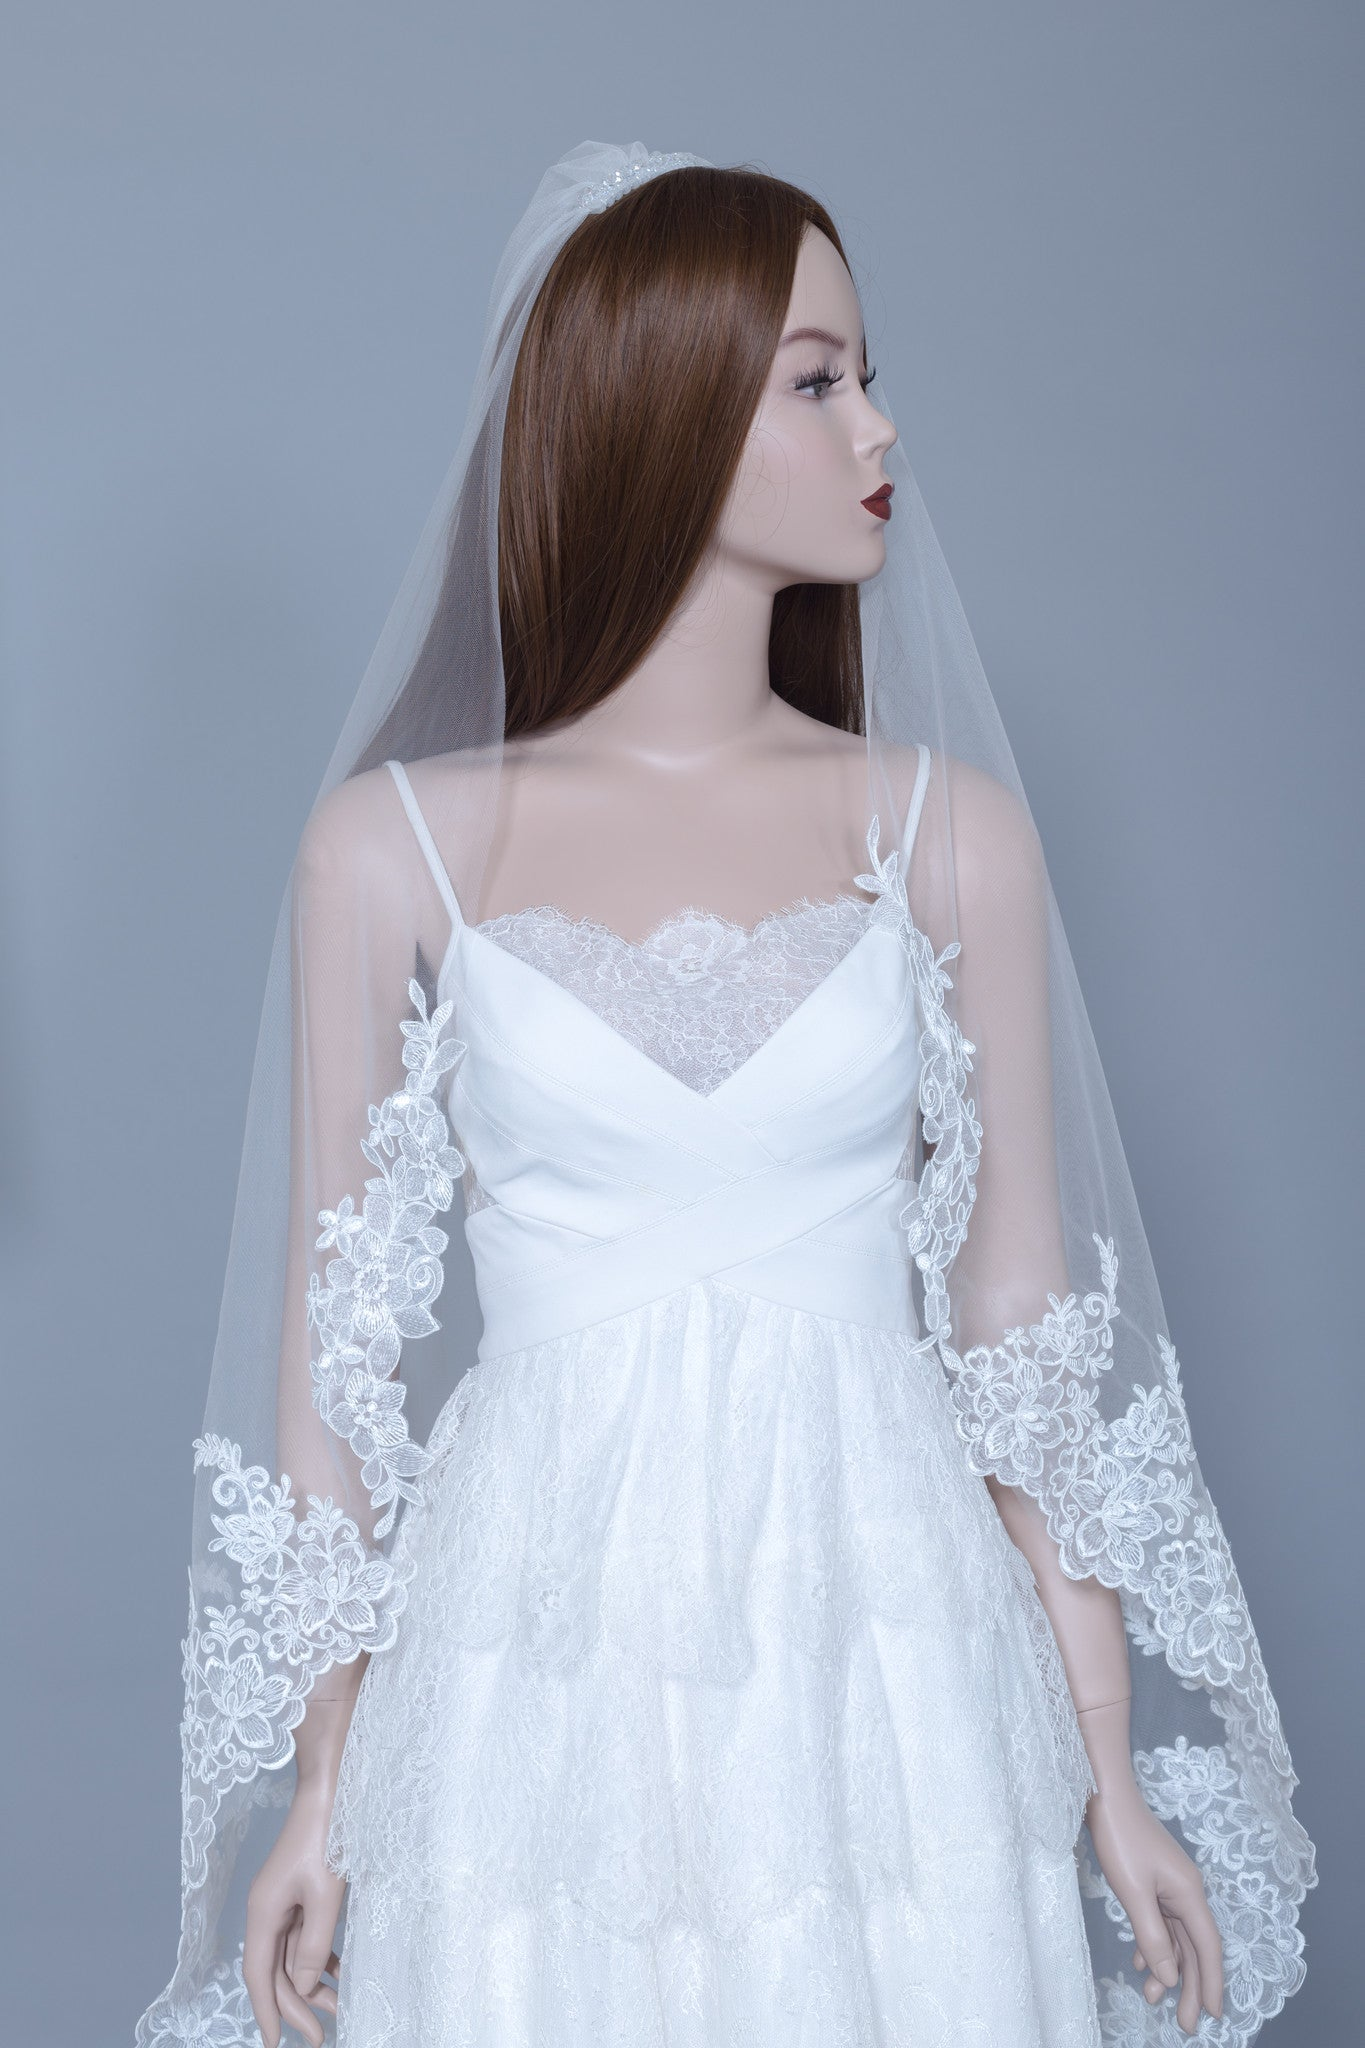 Lace Wedding Veil (#Helia)